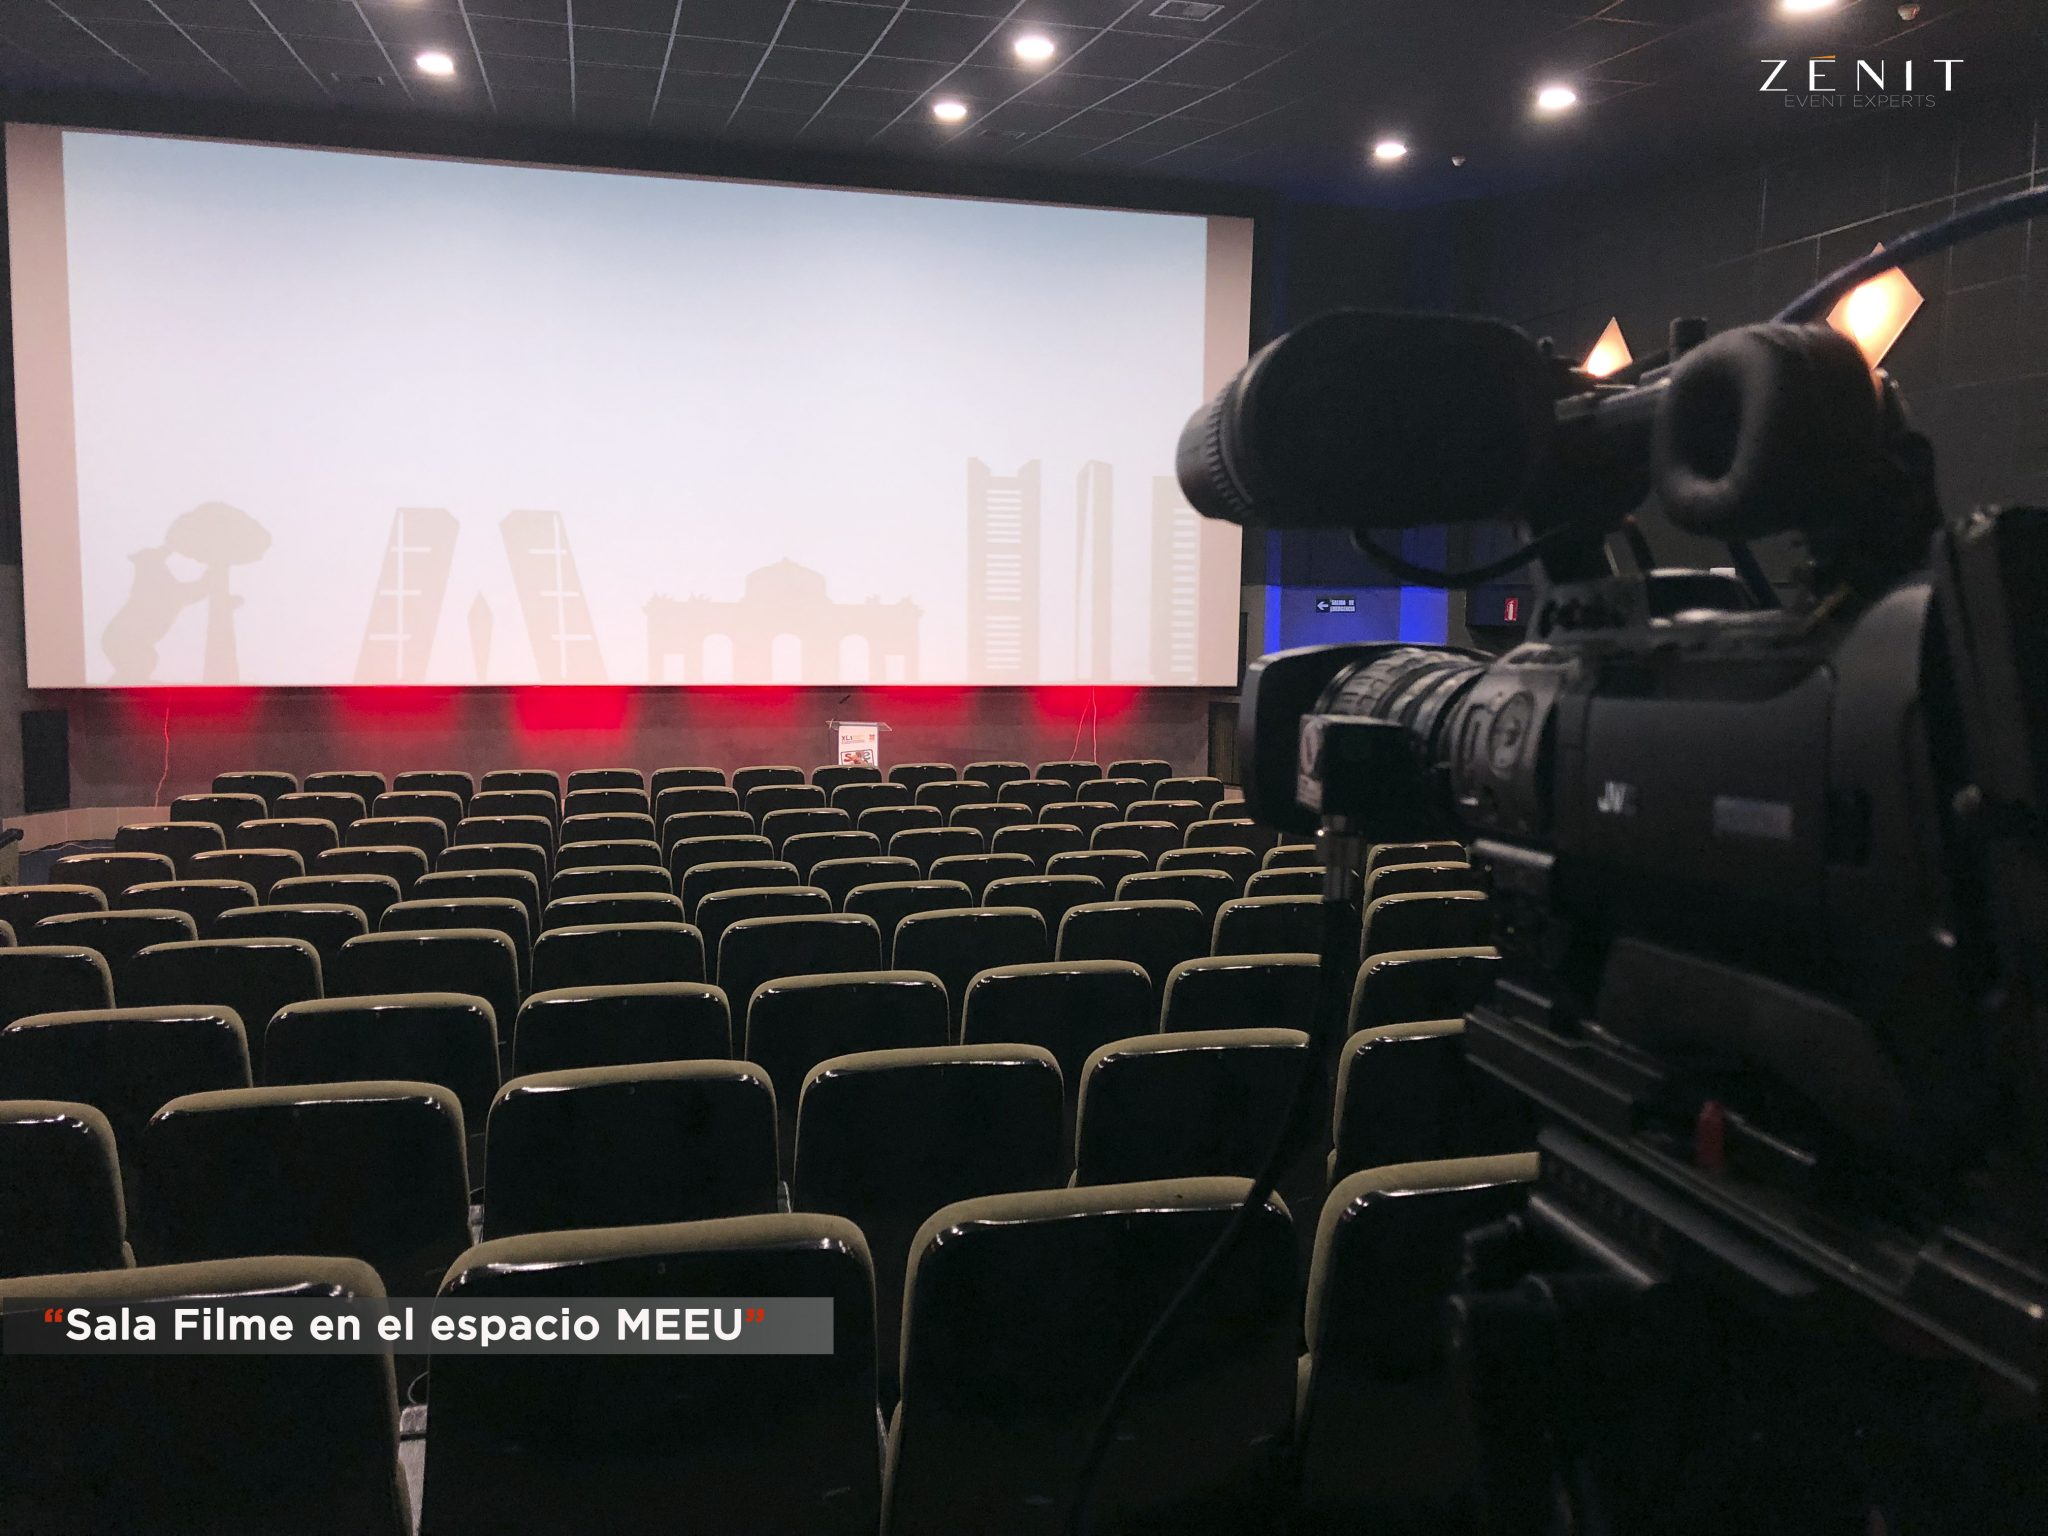 Zenit Event Experts. Sala Filme.